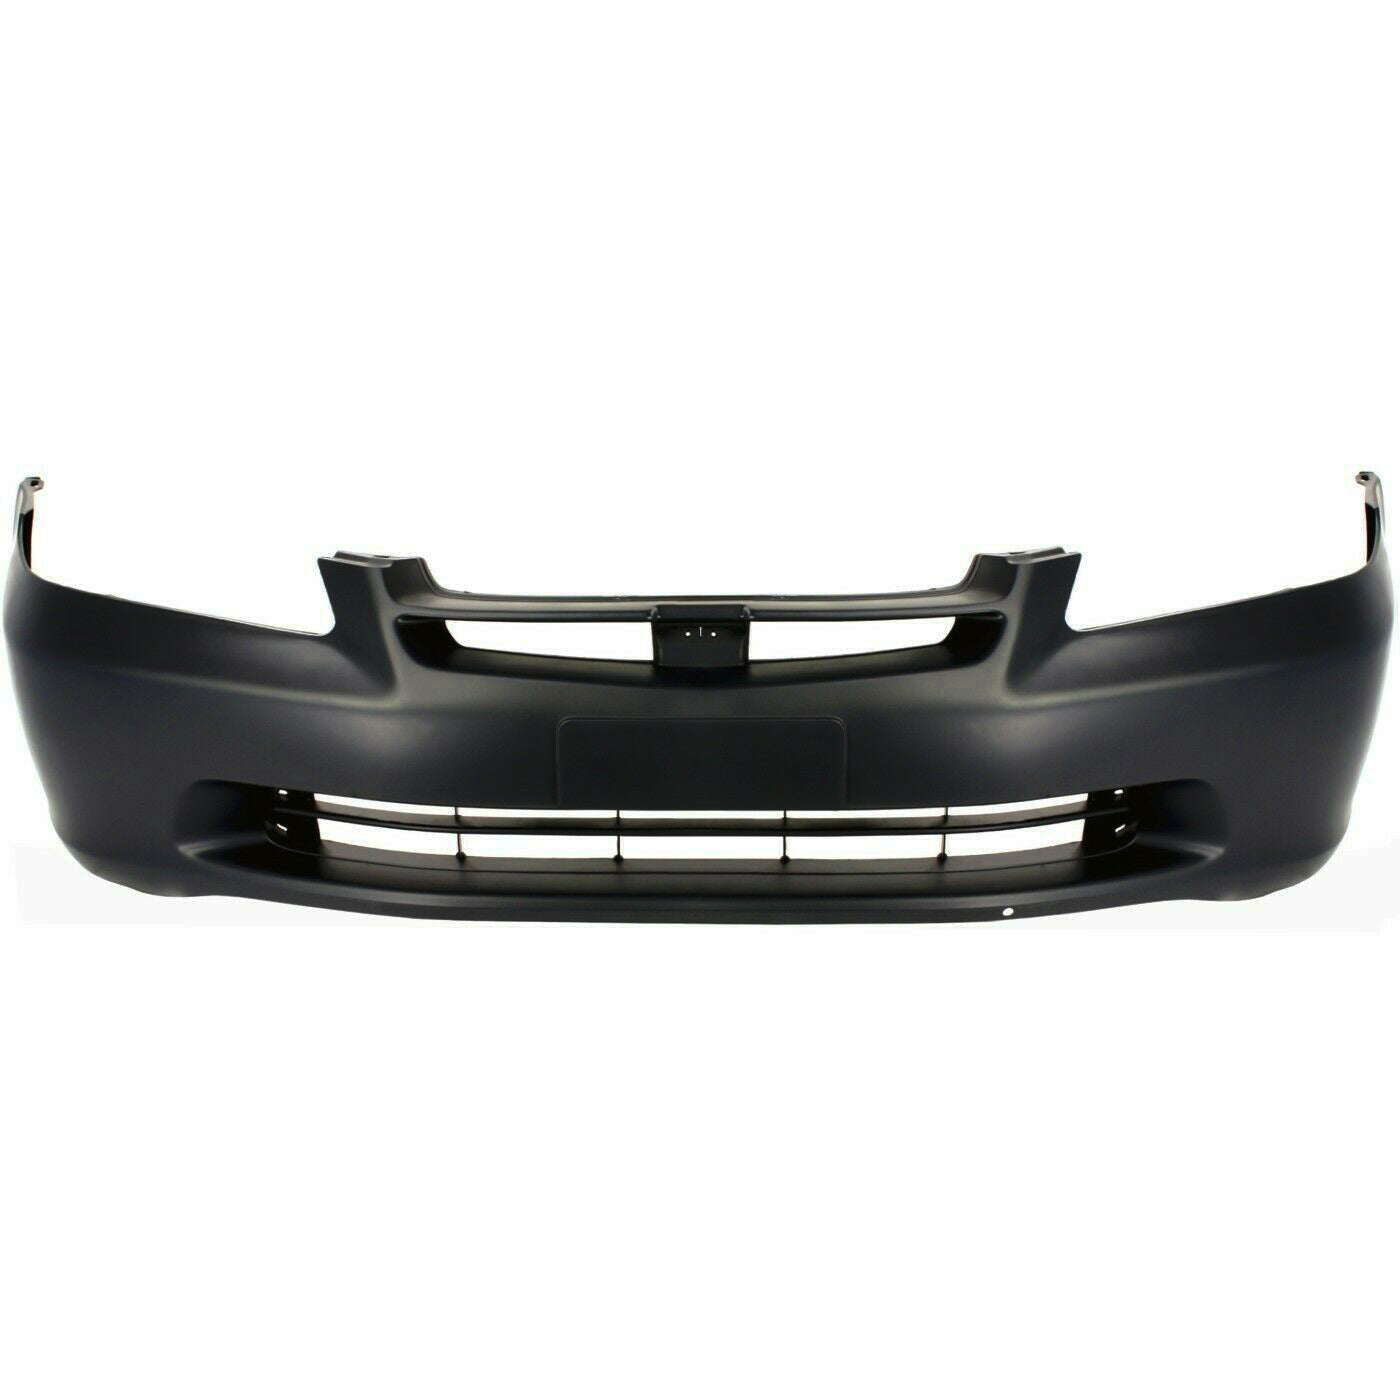 1998-2000 Honda Accord Sedan Front Bumper Cover